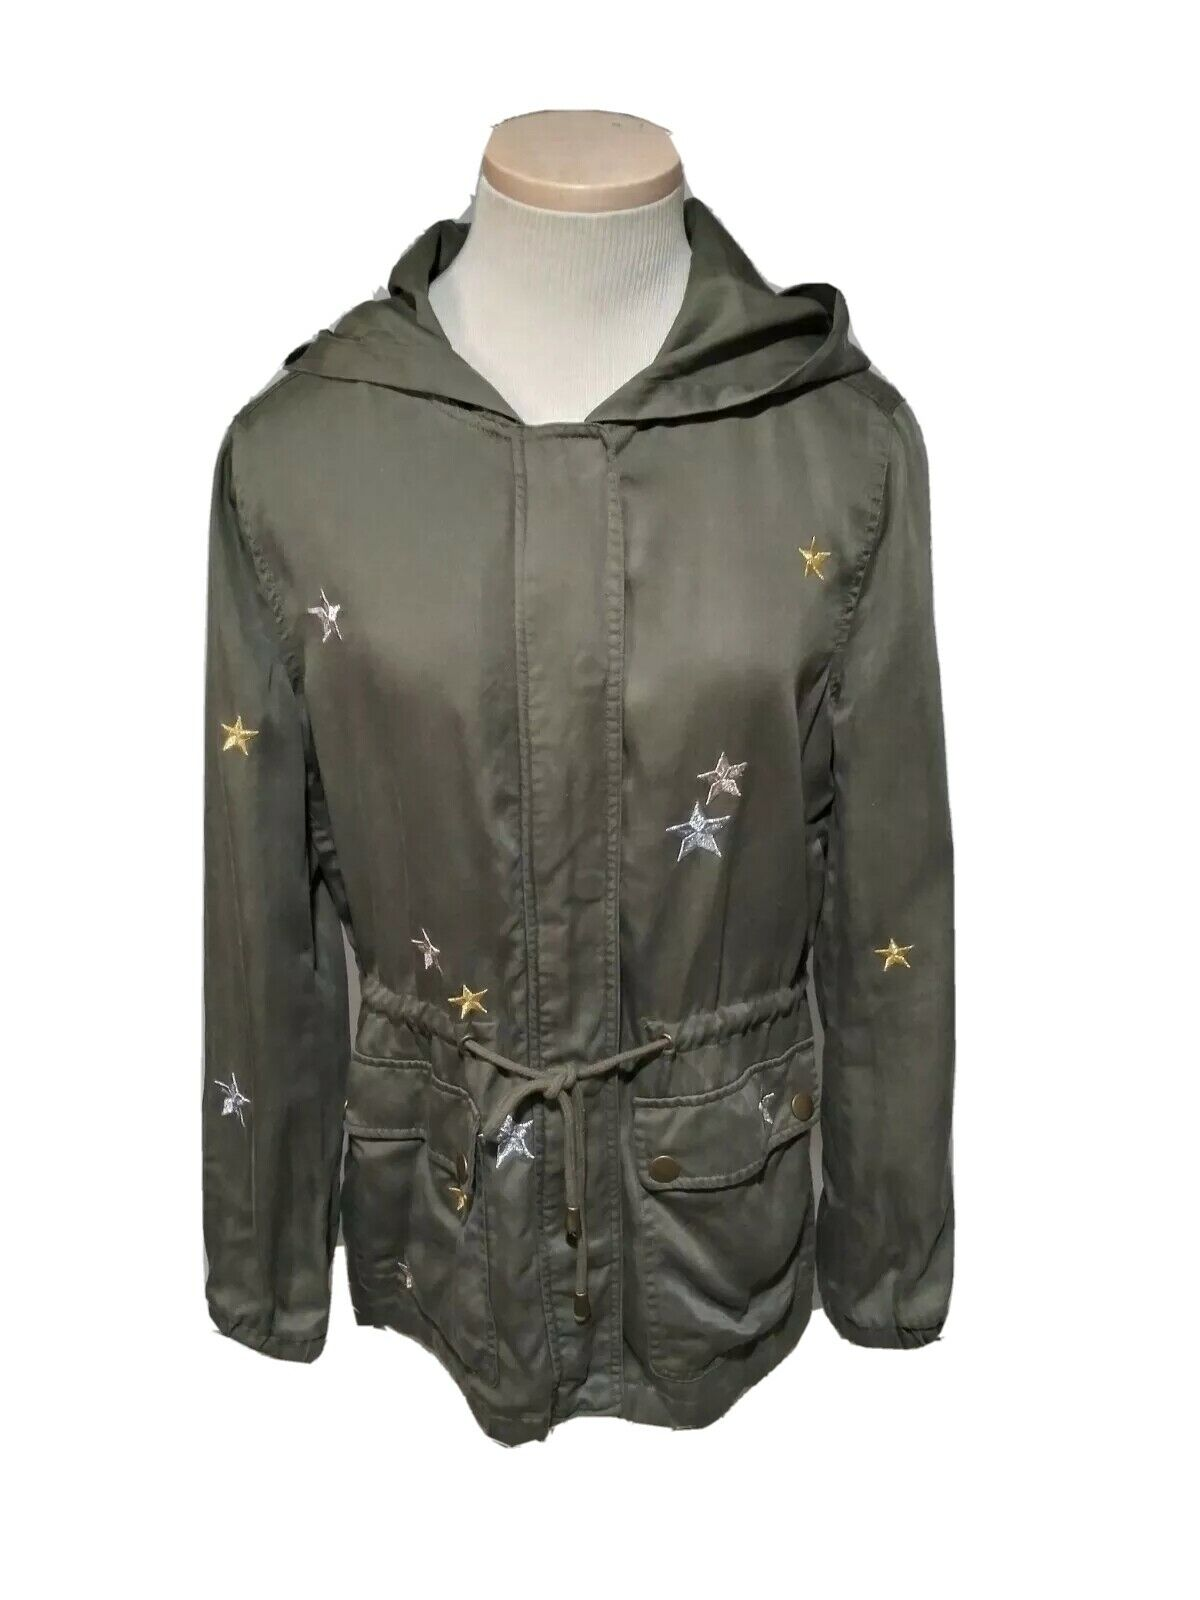 BAGATELLE Olive Green Field Jacket Embroided Sz S